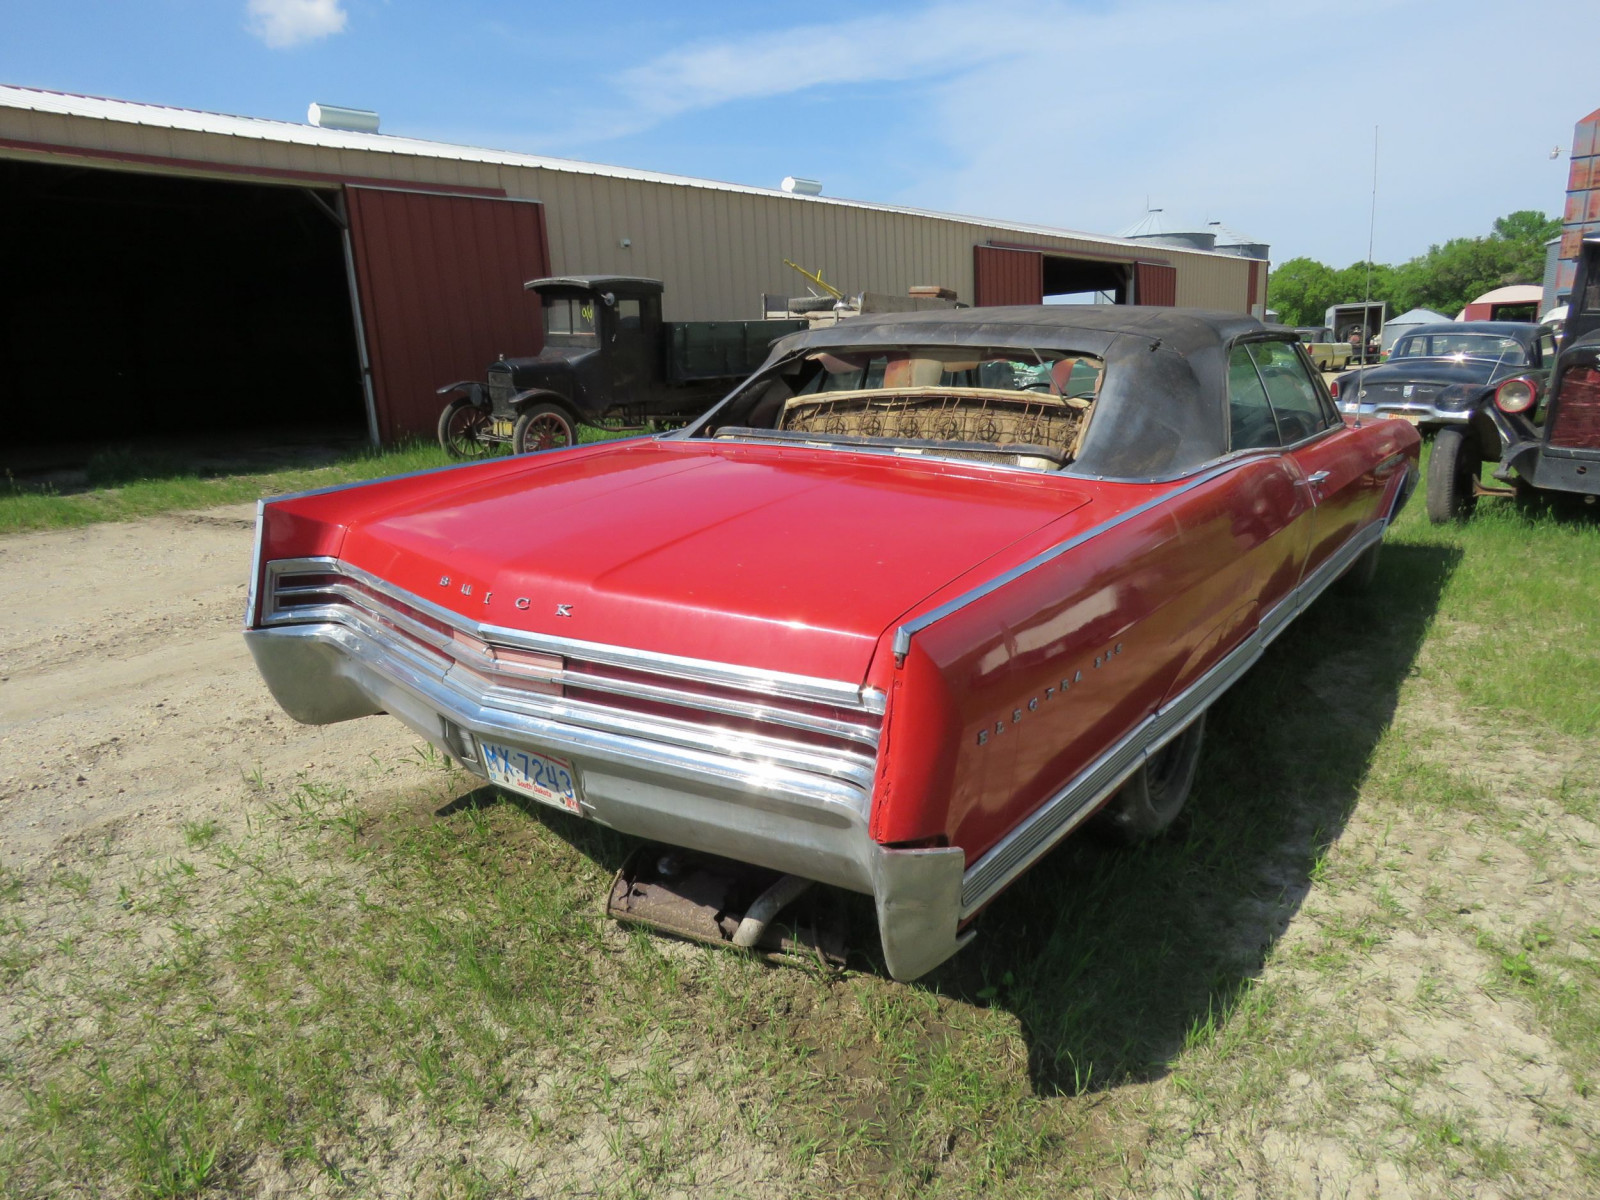 1965 Buick Electra 225 Convertible 484675H286474 - Image 5